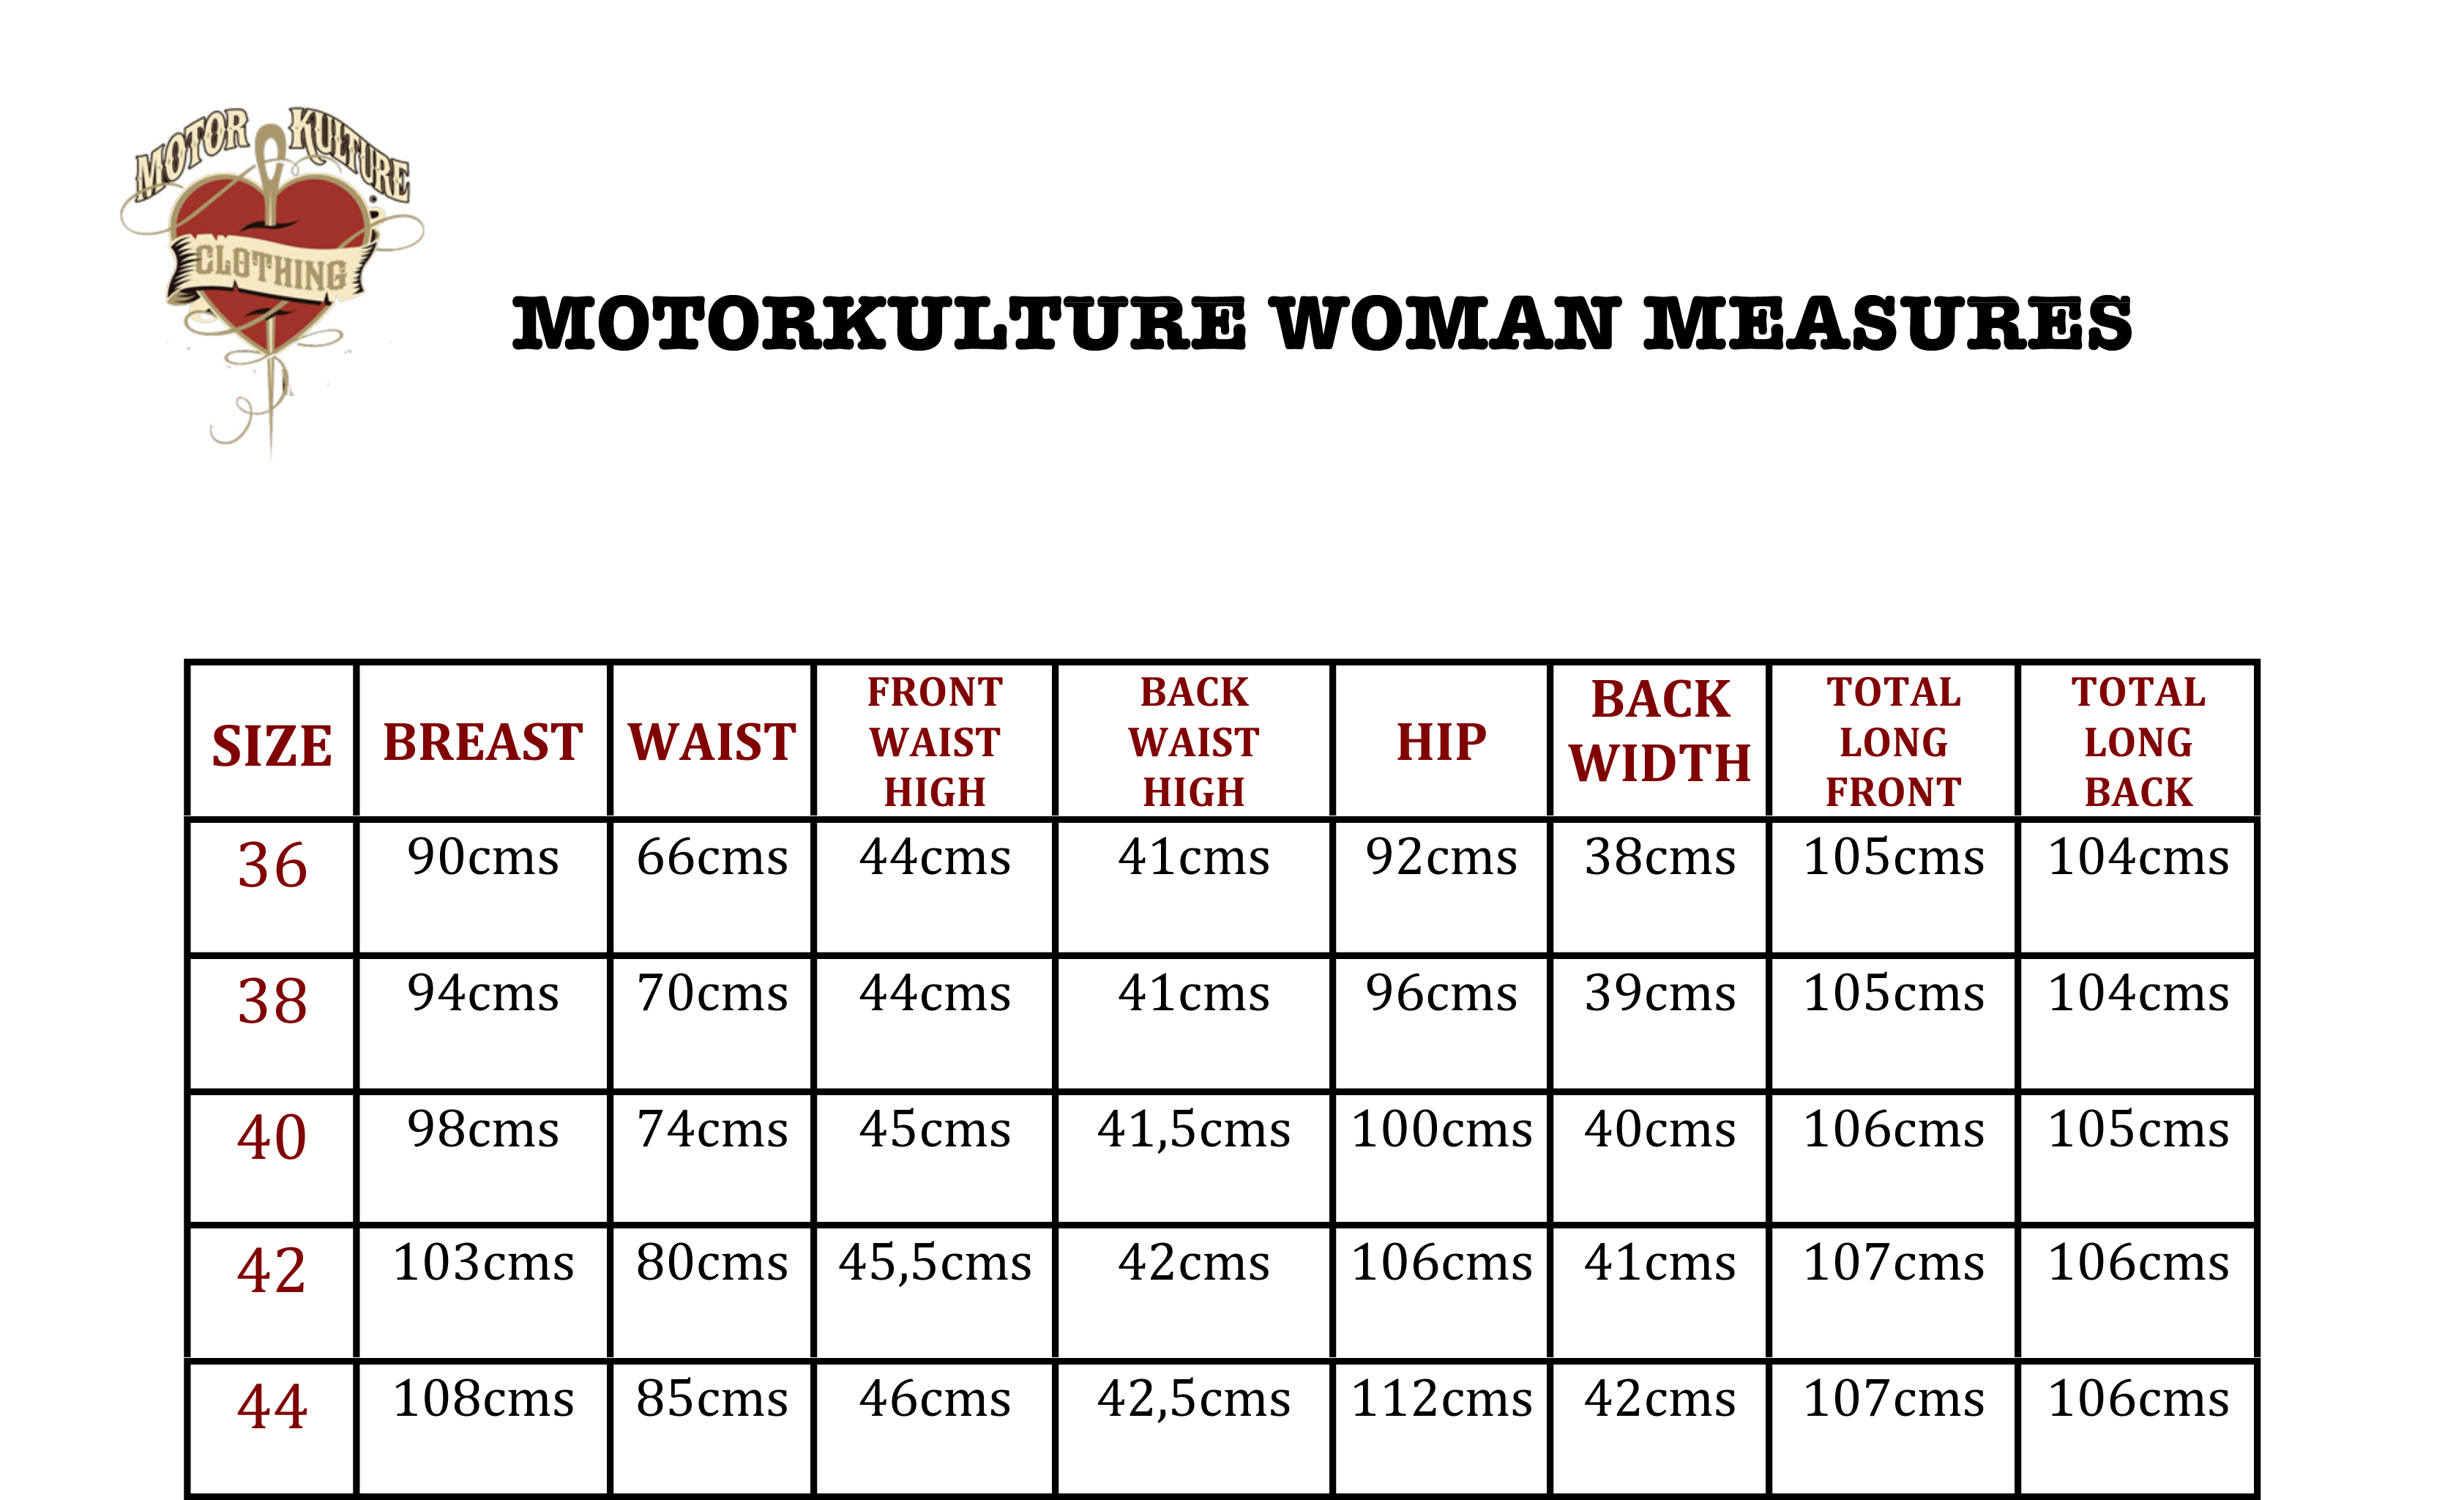 MKC Woman Measures